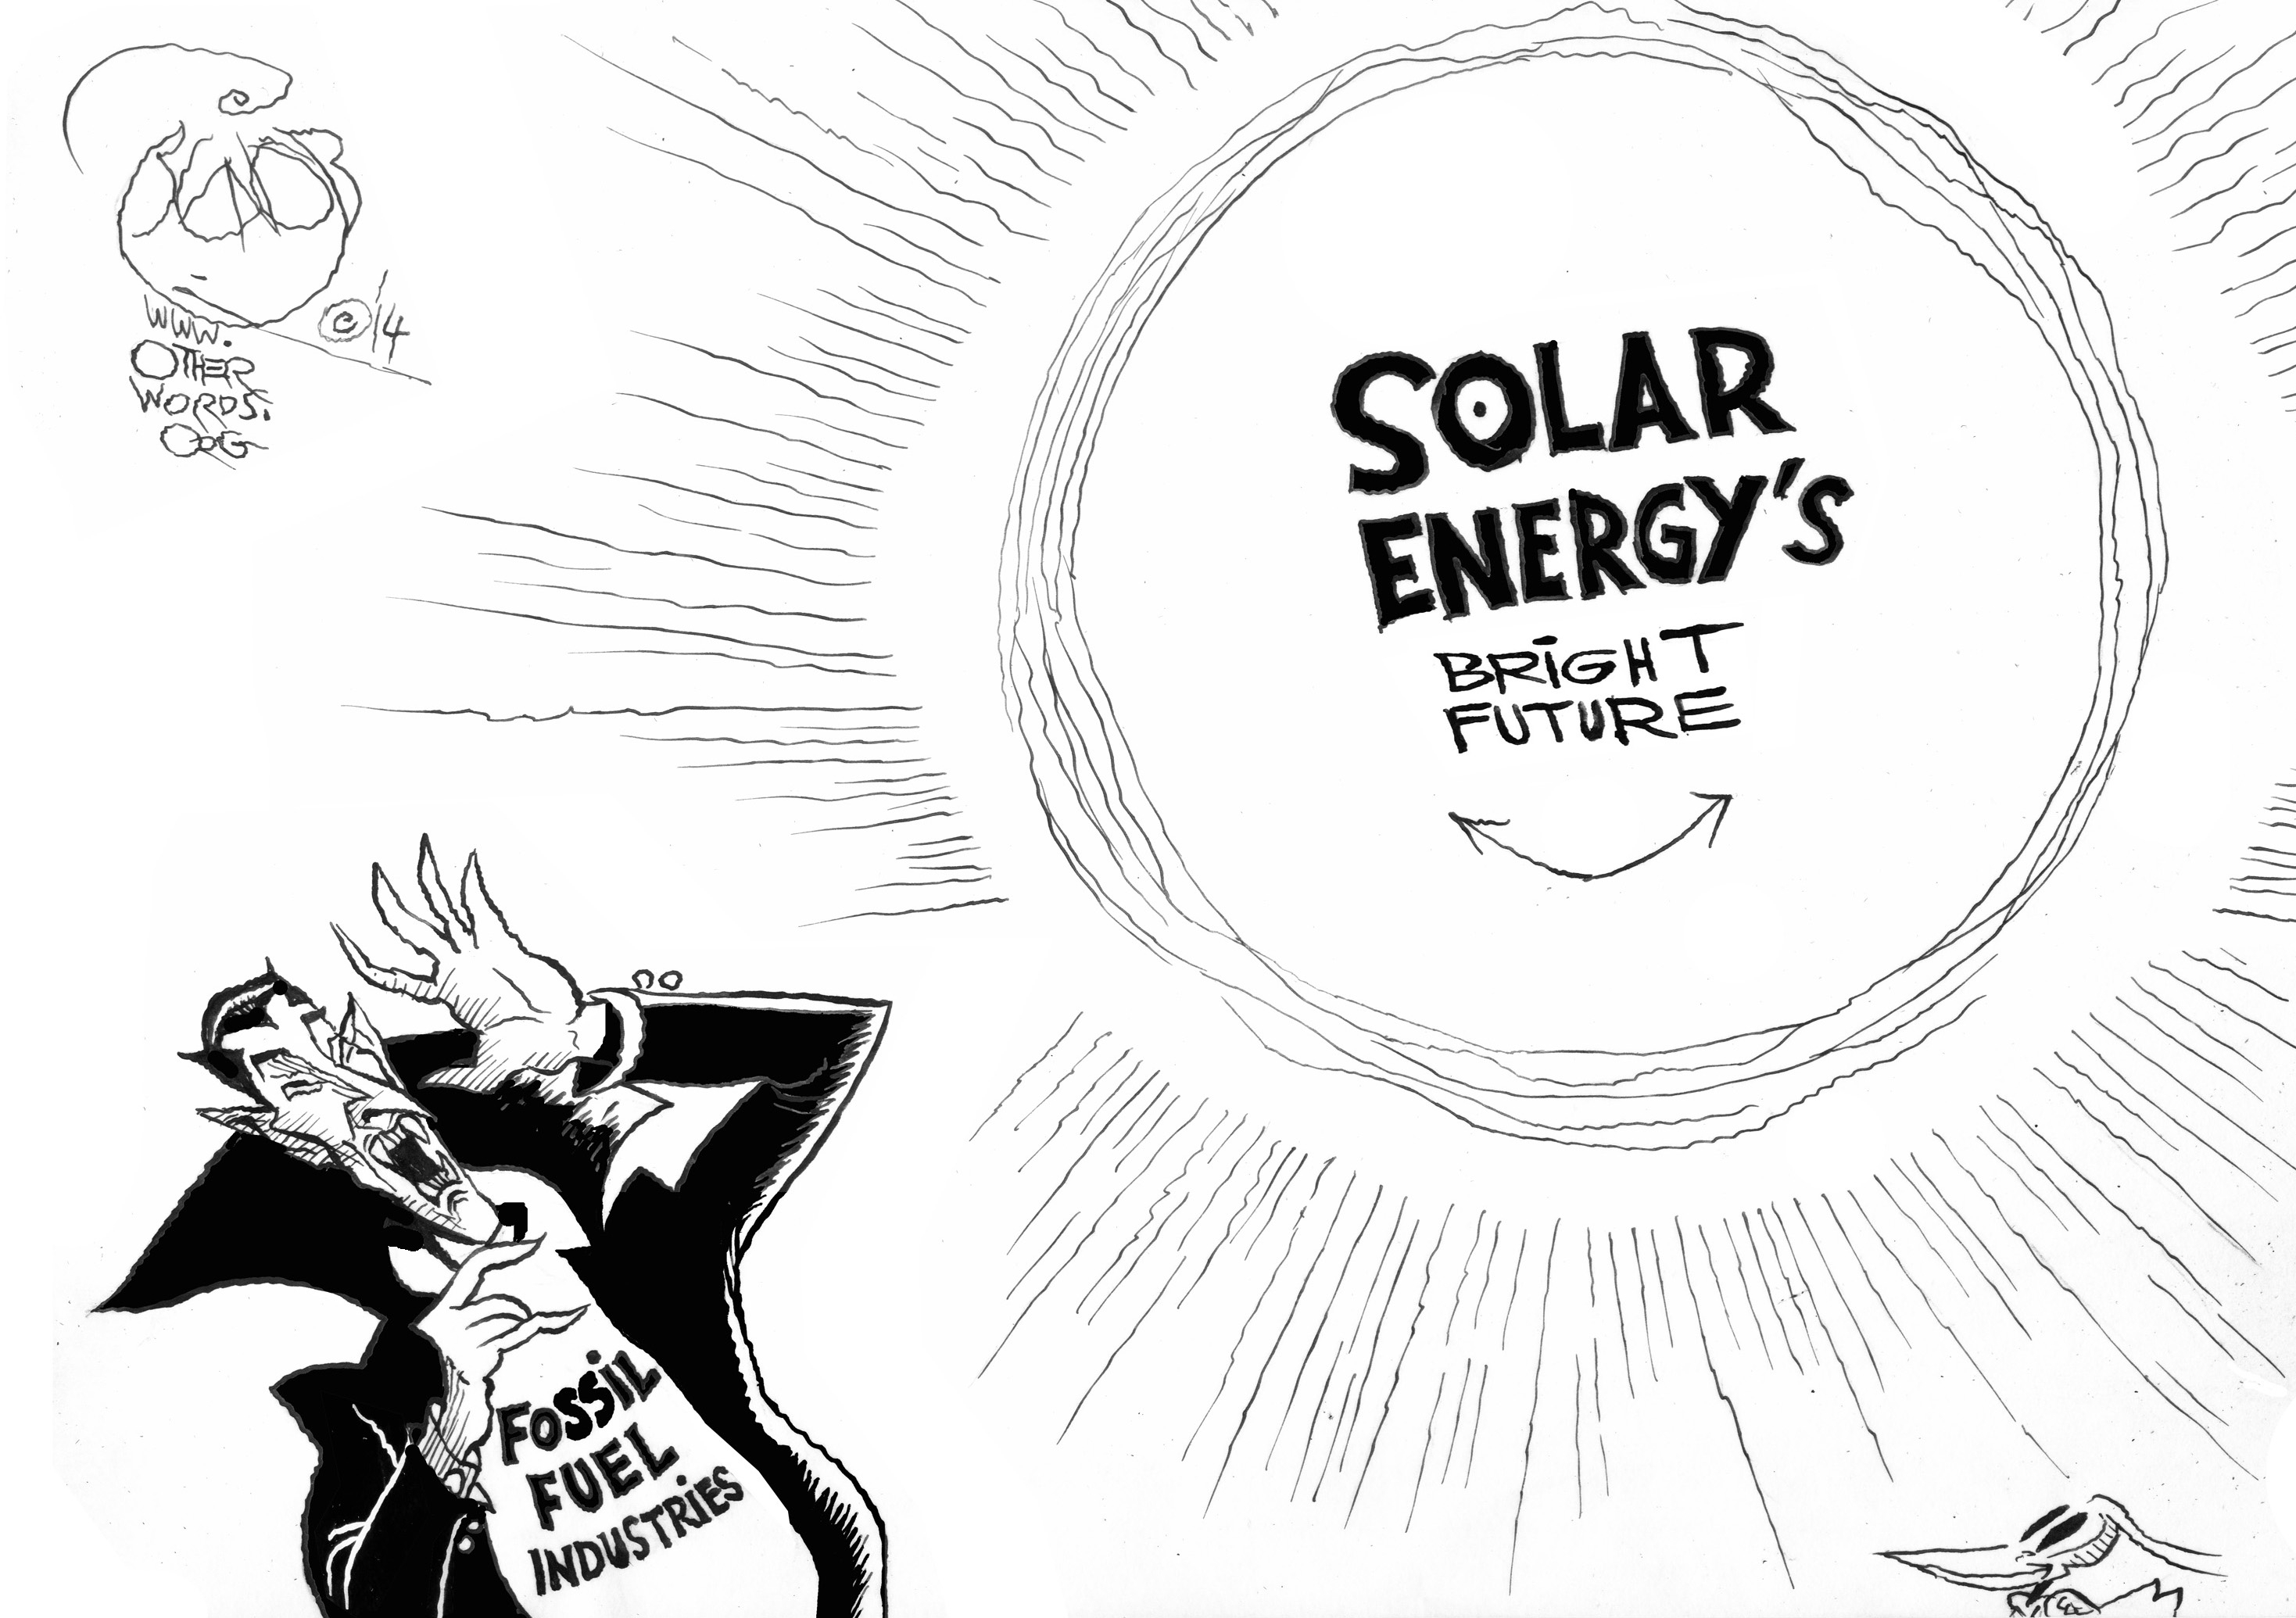 Solar Power Gets Hot, Hot, Hot